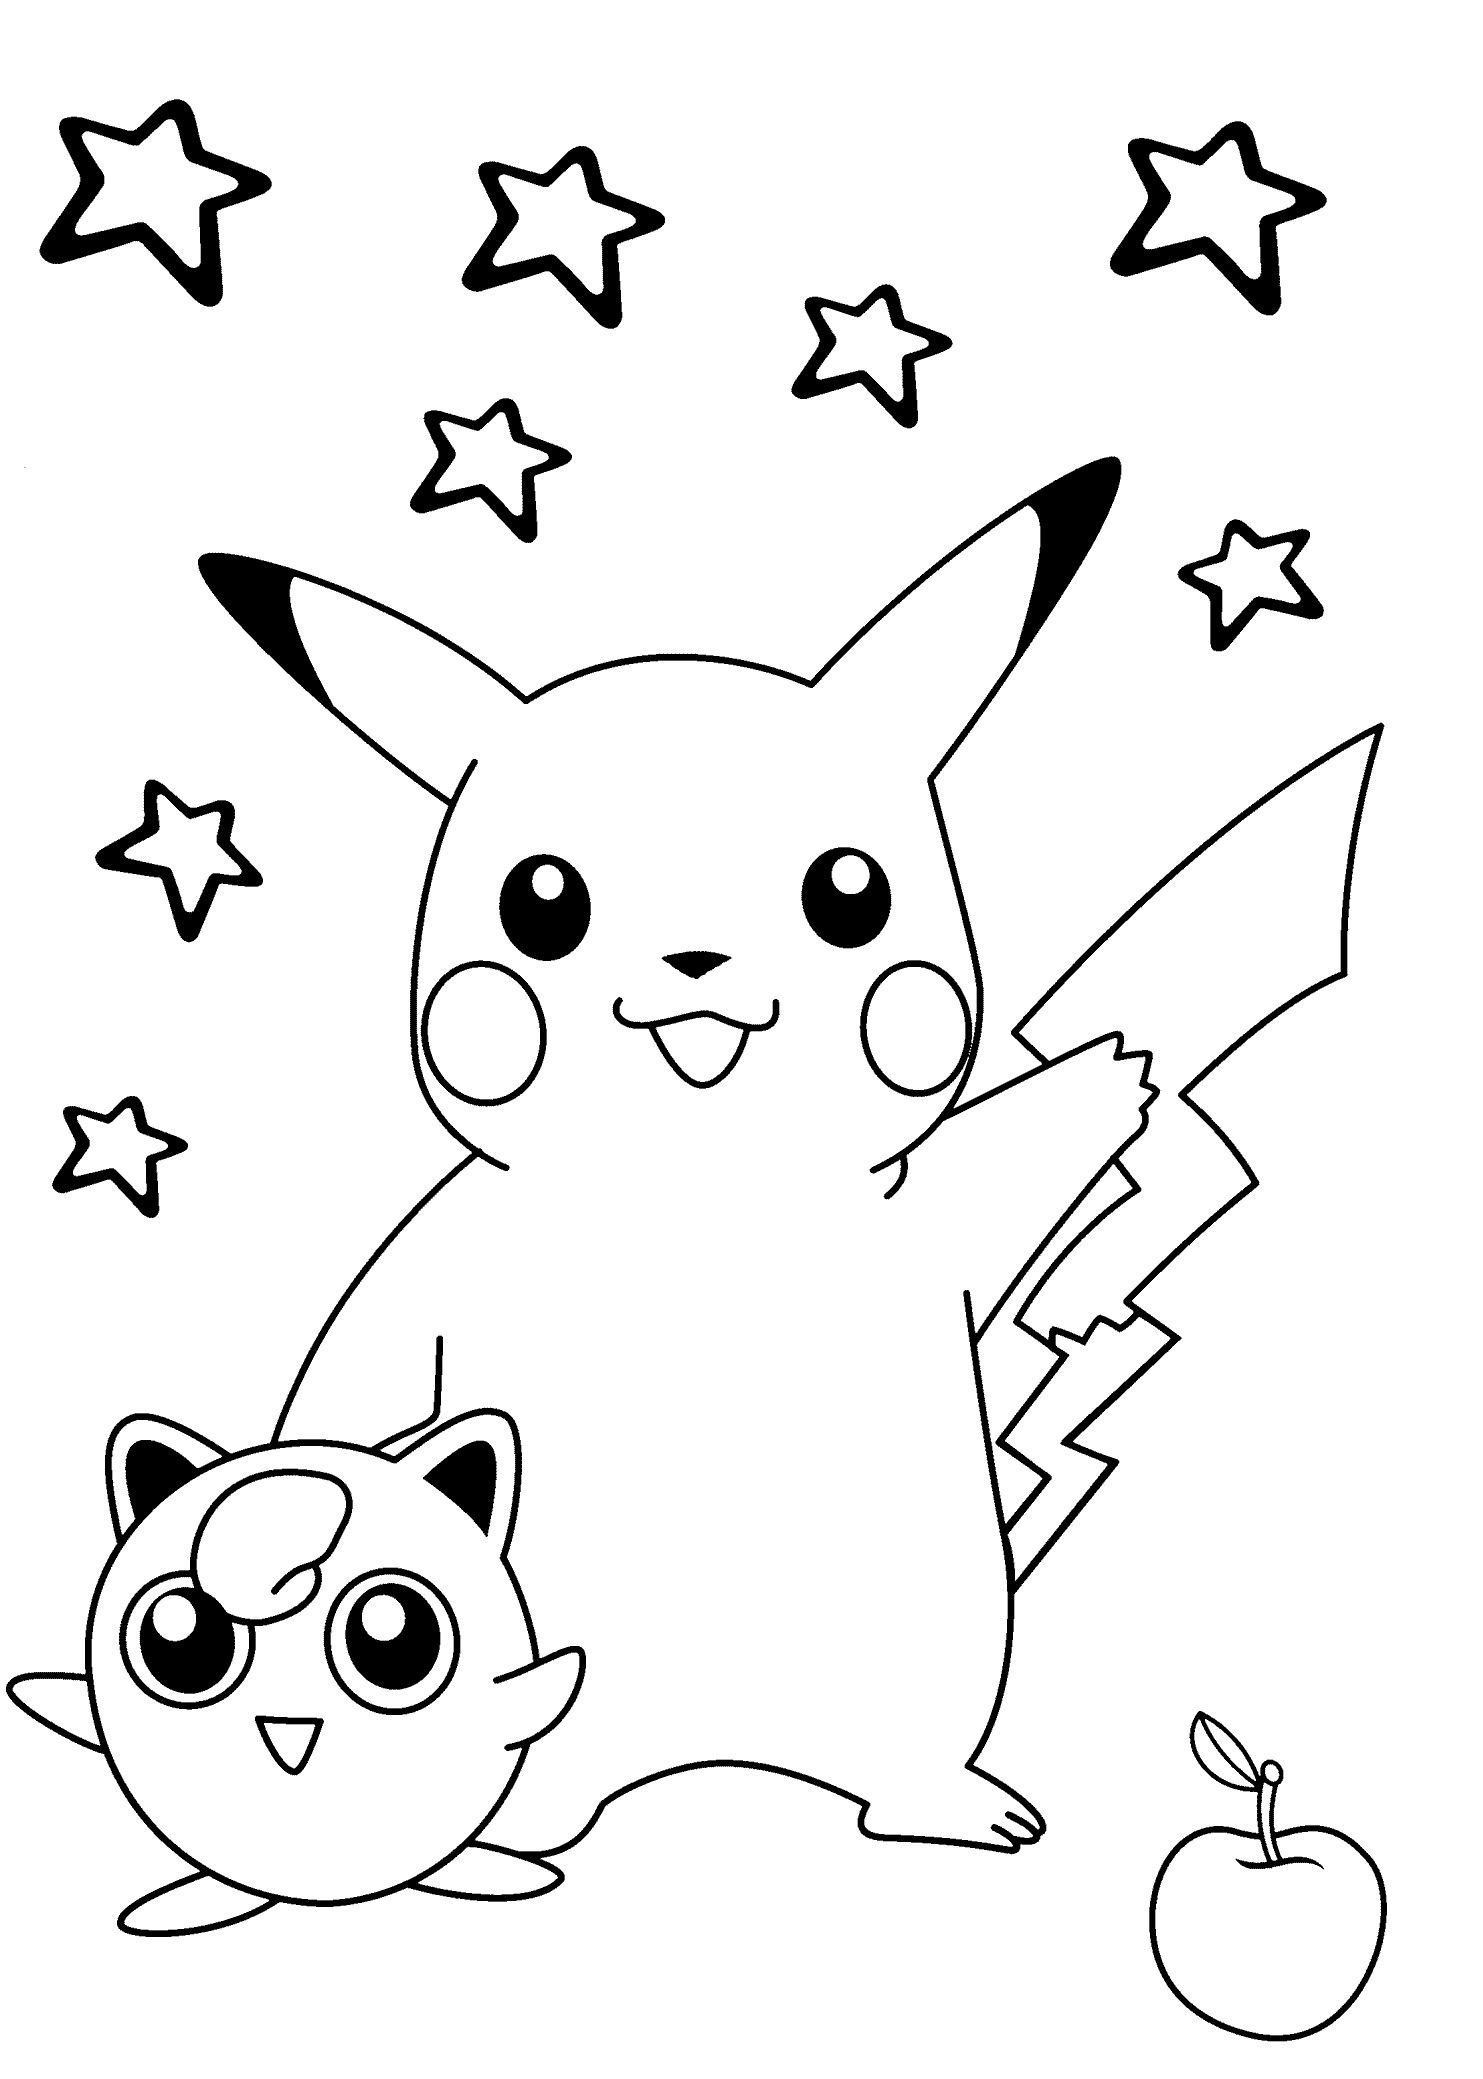 Pokemon Coloring Pages App From The Thousands Of Images On The Internet With Regards To Pikachu Coloring Page Pokemon Coloring Pages Pokemon Coloring Sheets